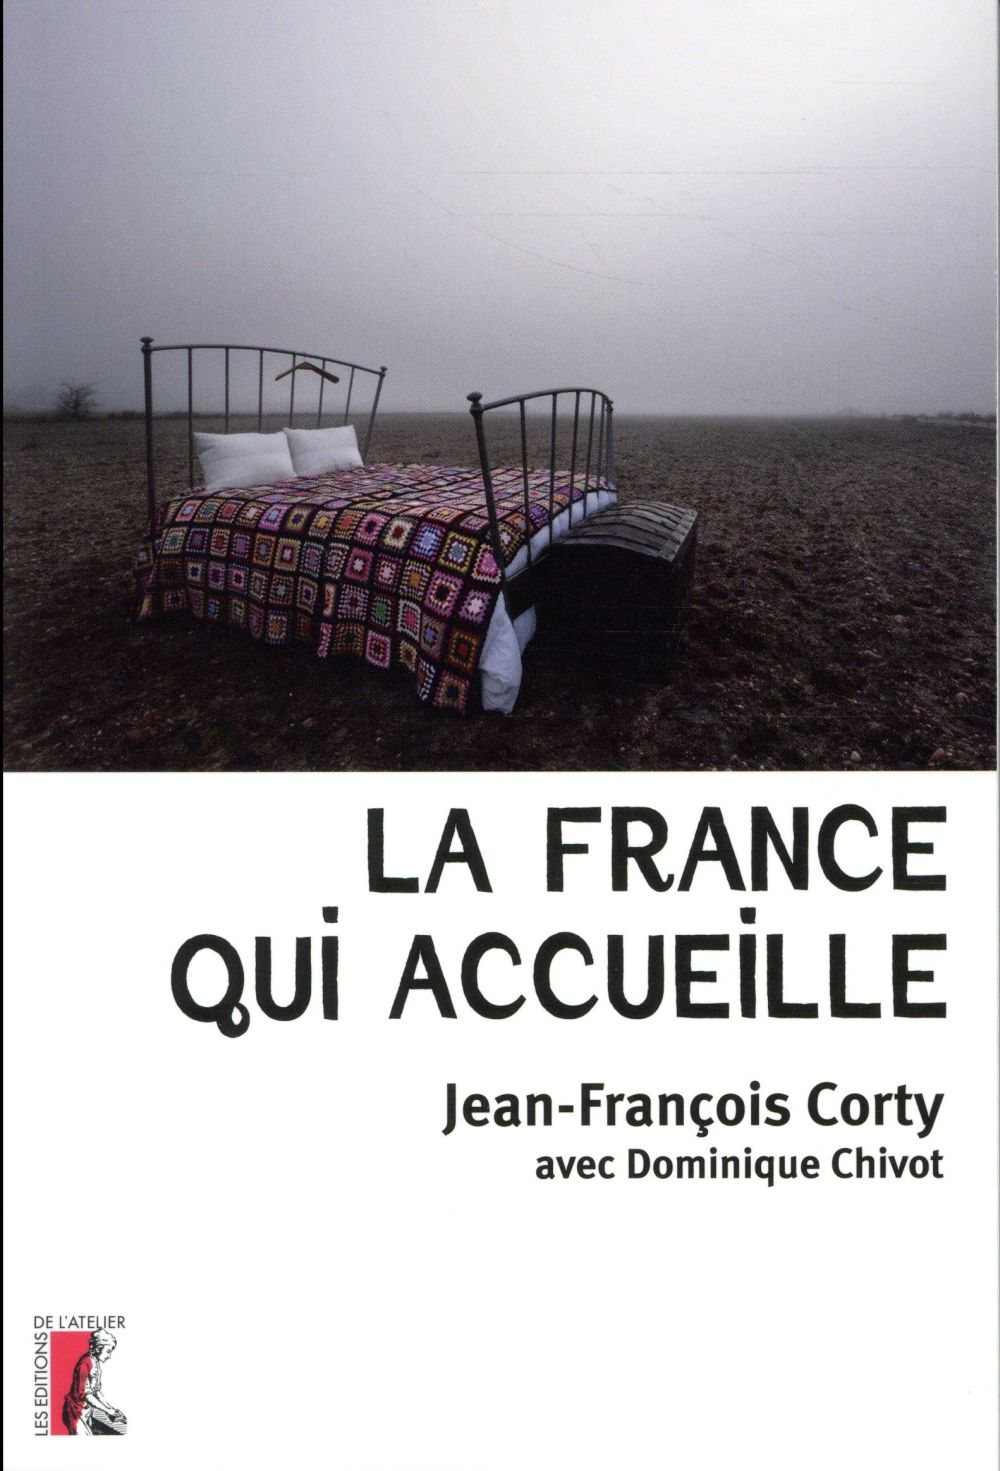 La france qui accueille